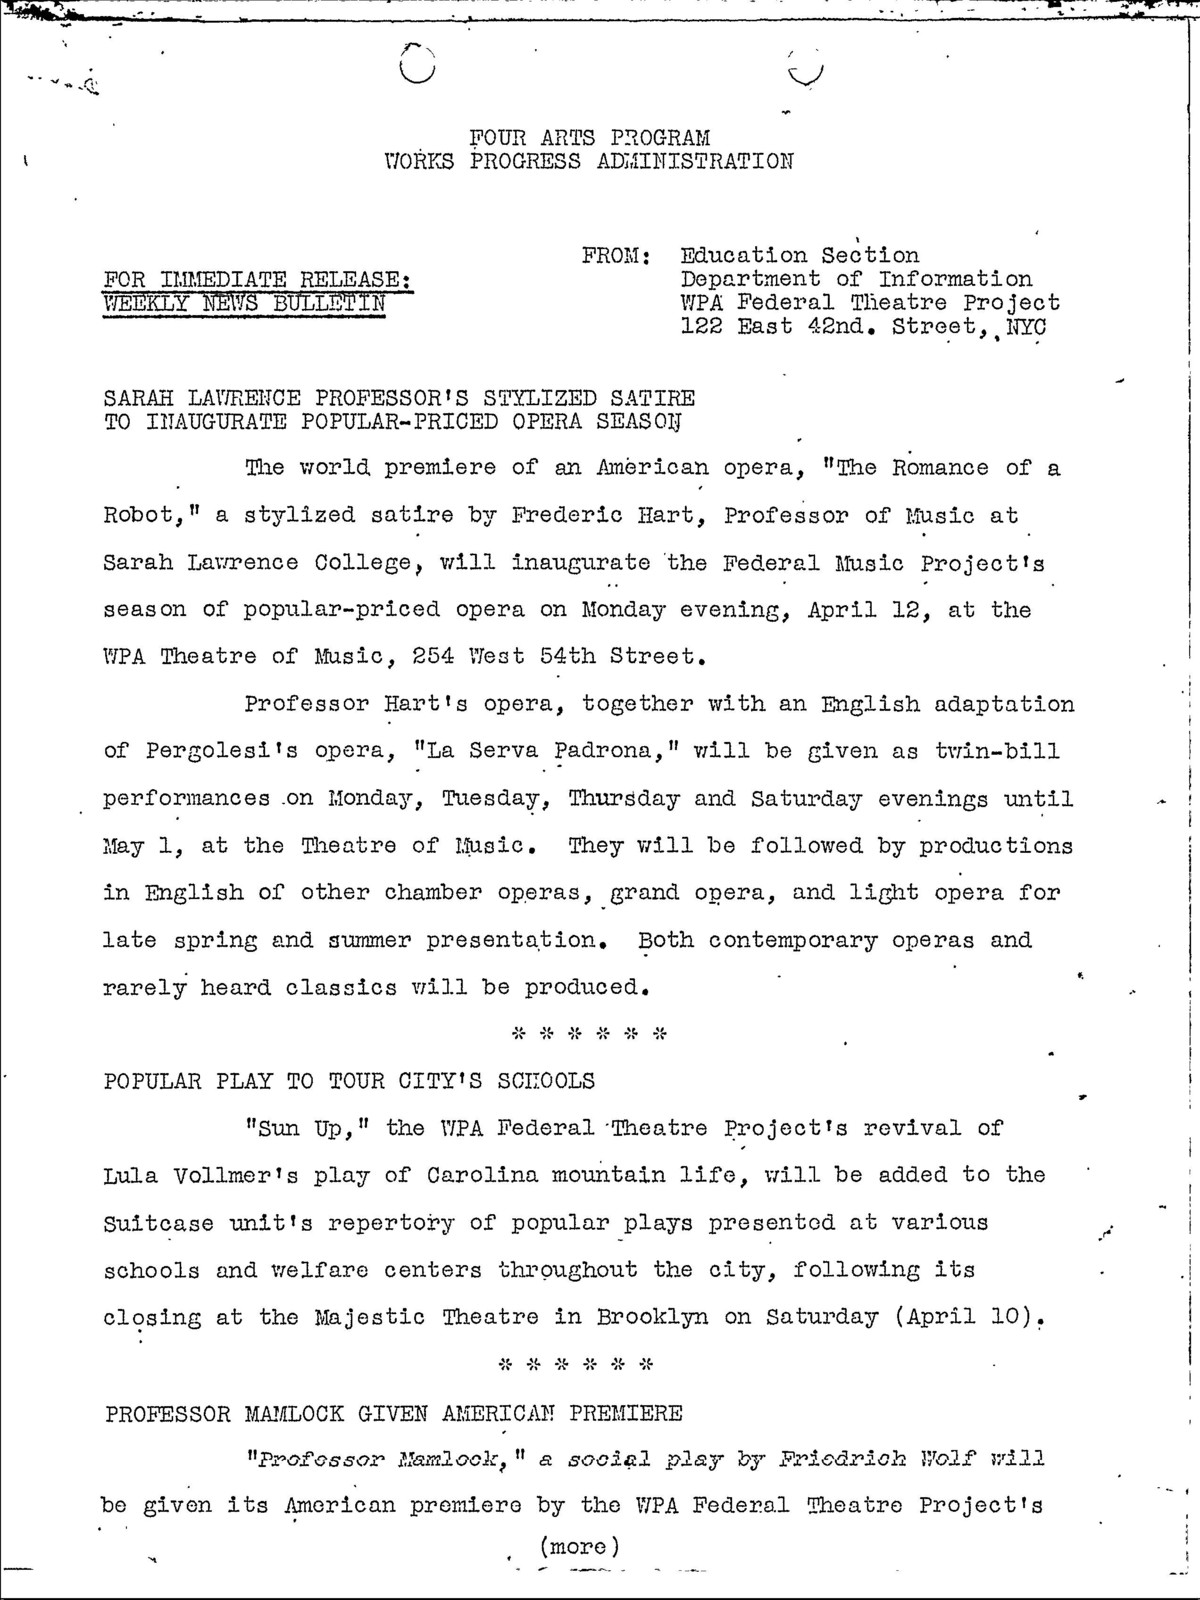 Publicity - 1937 - Press Release - Weekly News Bulletin - NYC